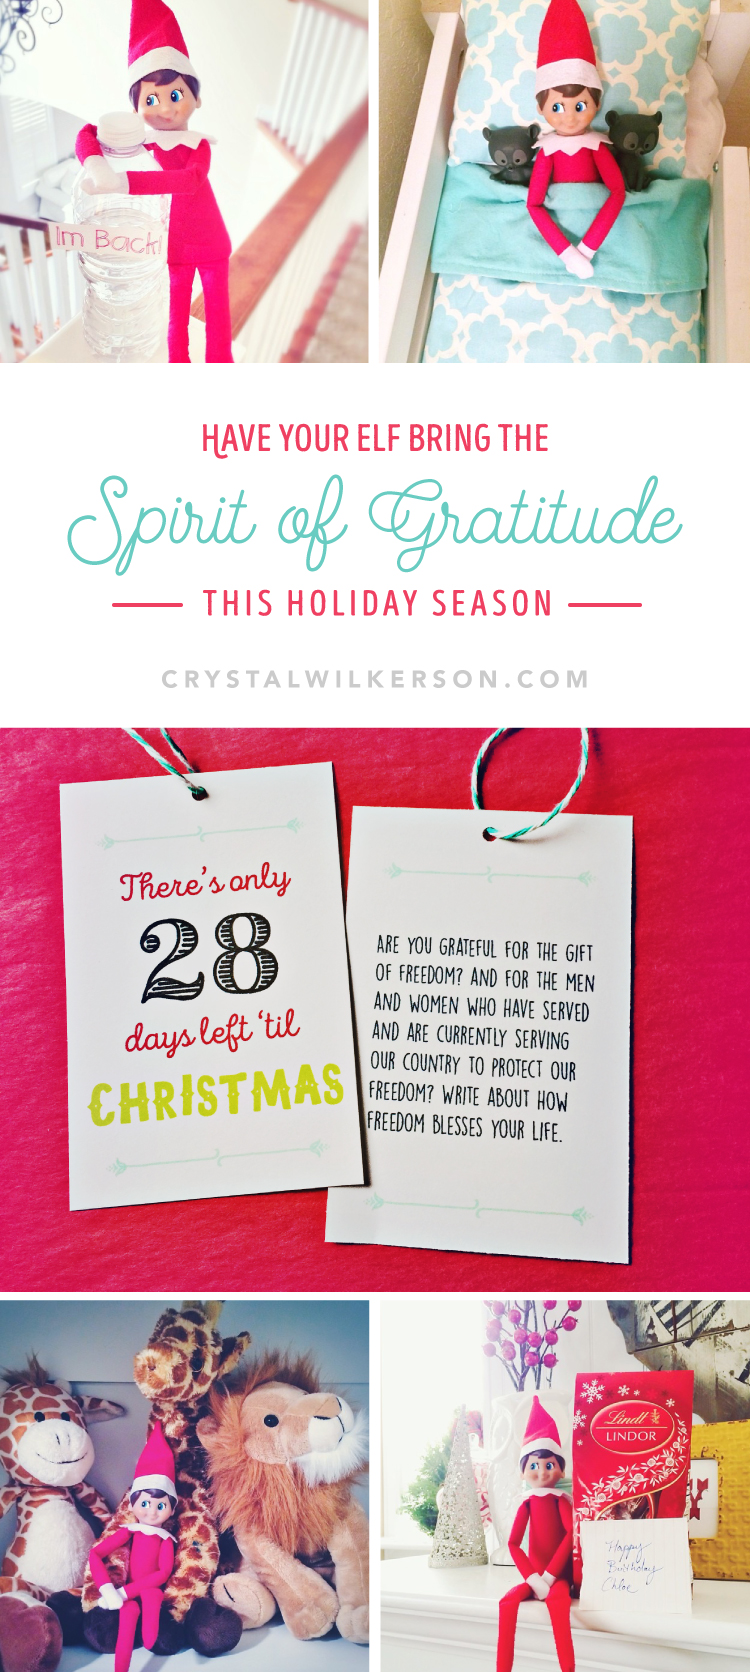 01_CrystalWilkerson_ElfOnTheShelf_GratitudeCards